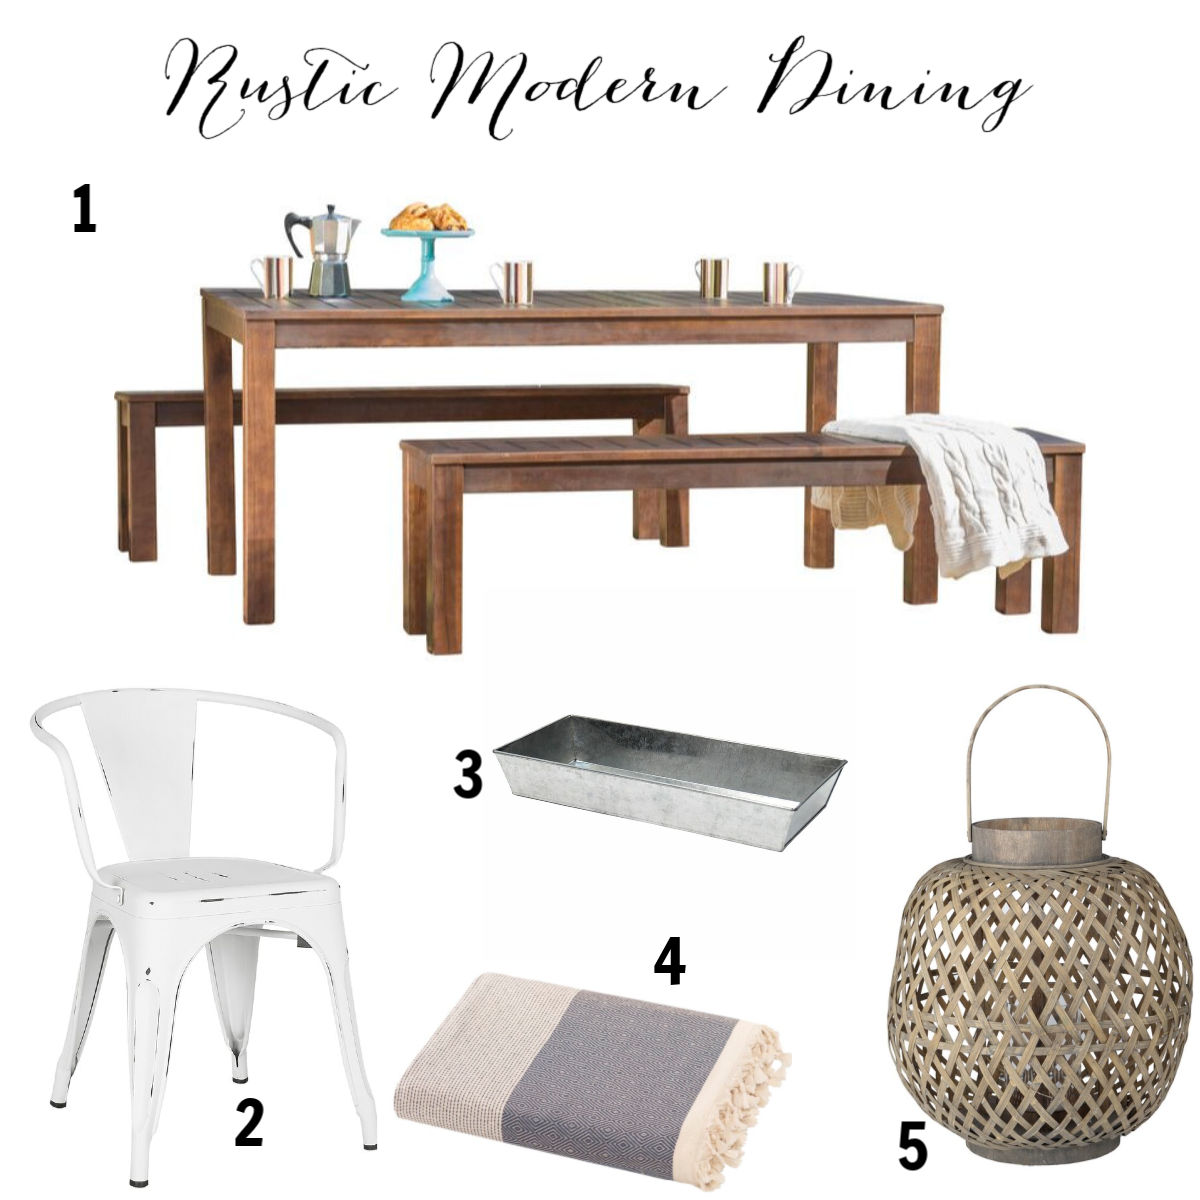 Modern Rustic Dining All Modern Outdoor Oasis Banner on Hello Lovely Studio